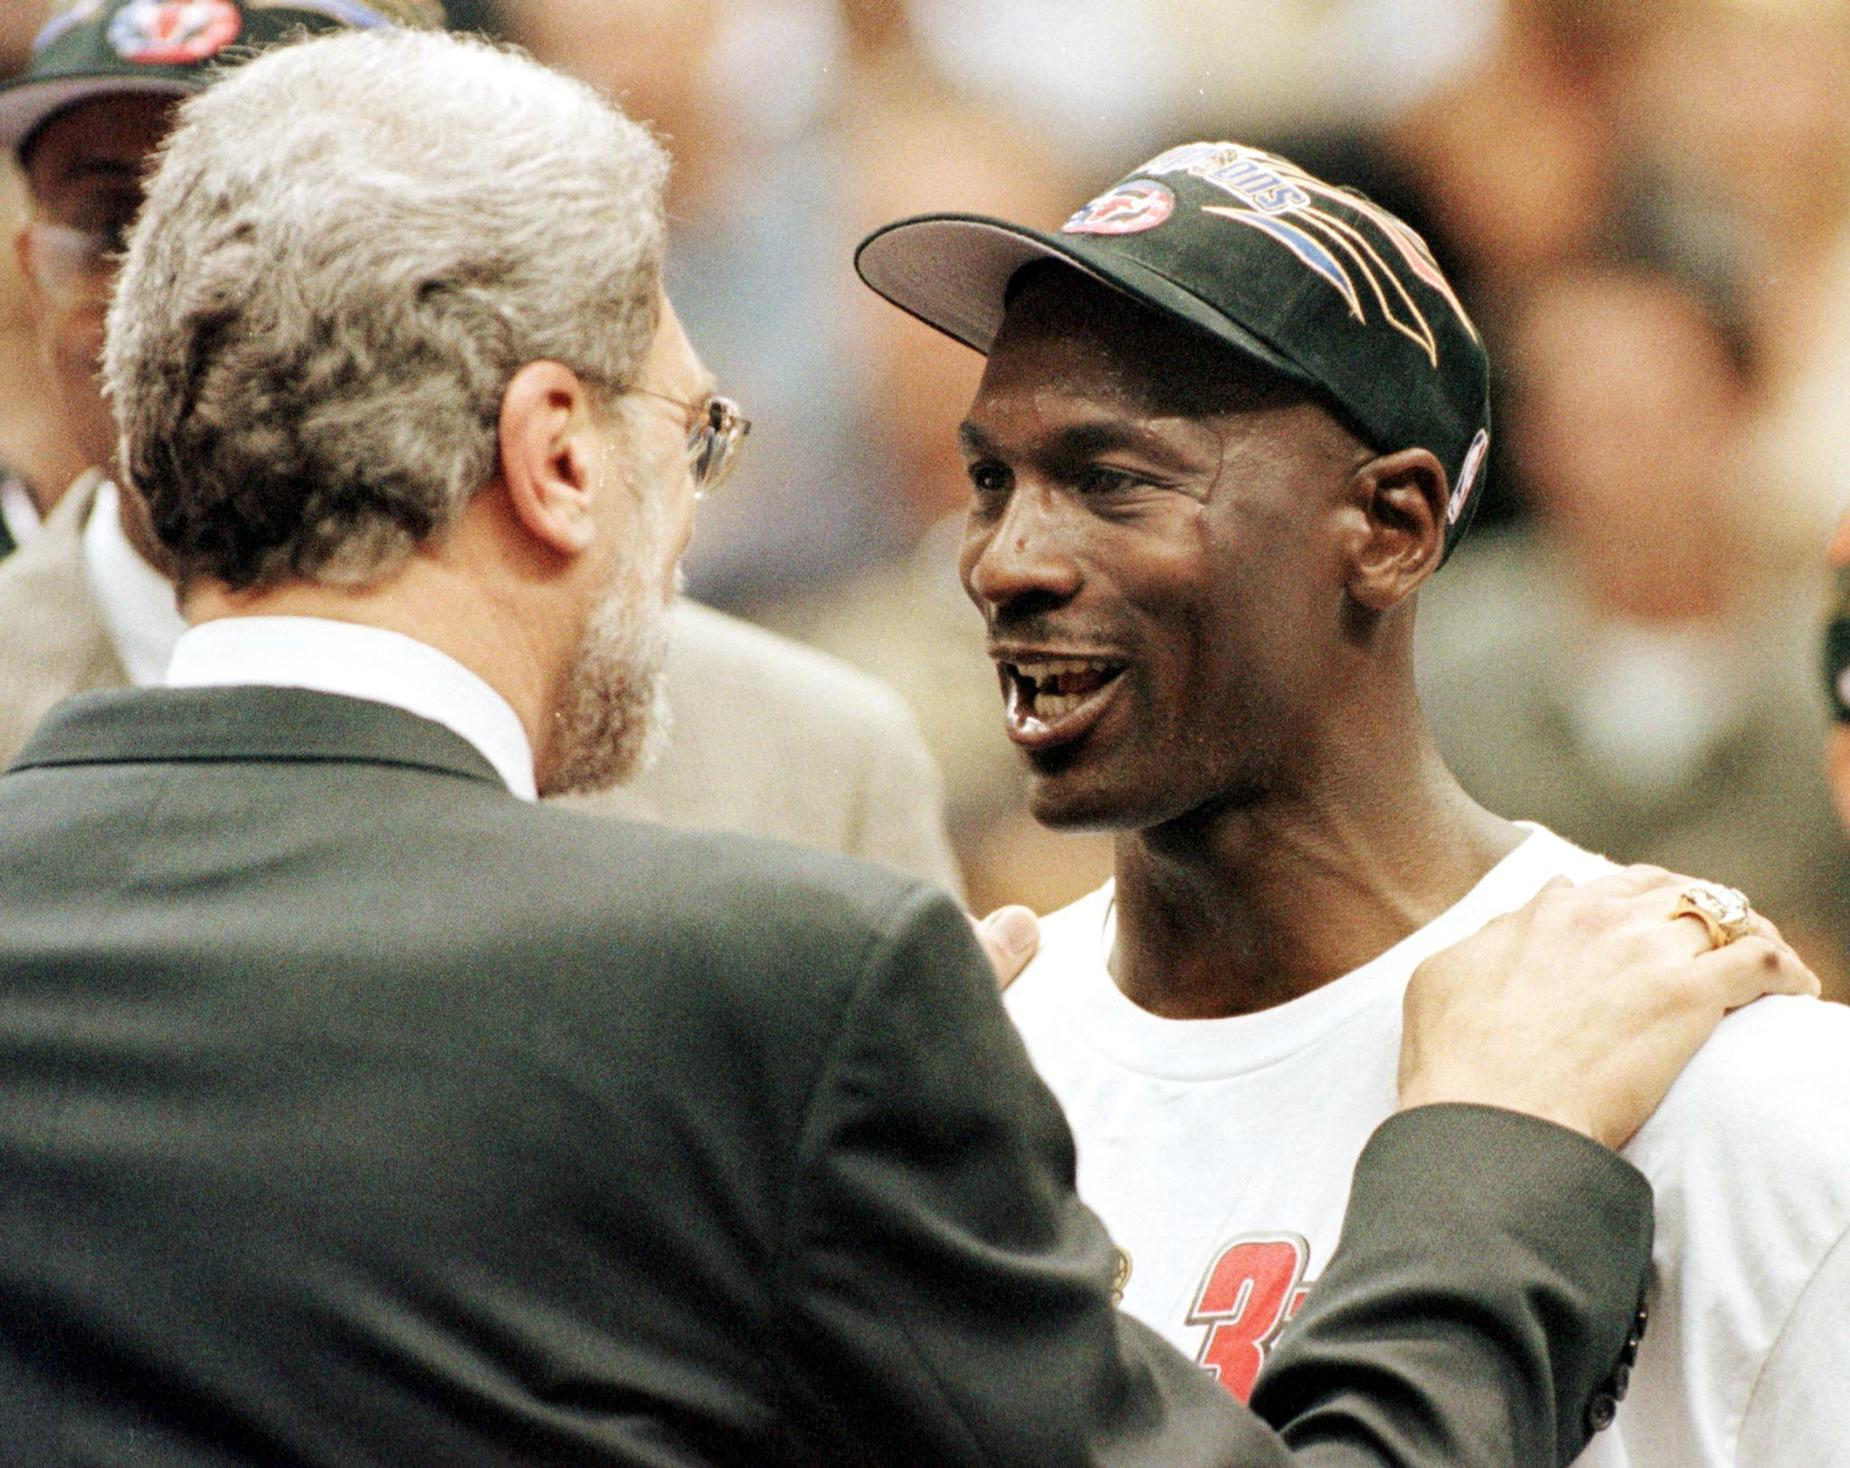 Phil Jackson (L) and Michael Jordan (R) both found incredible success with the Chicago Bulls.